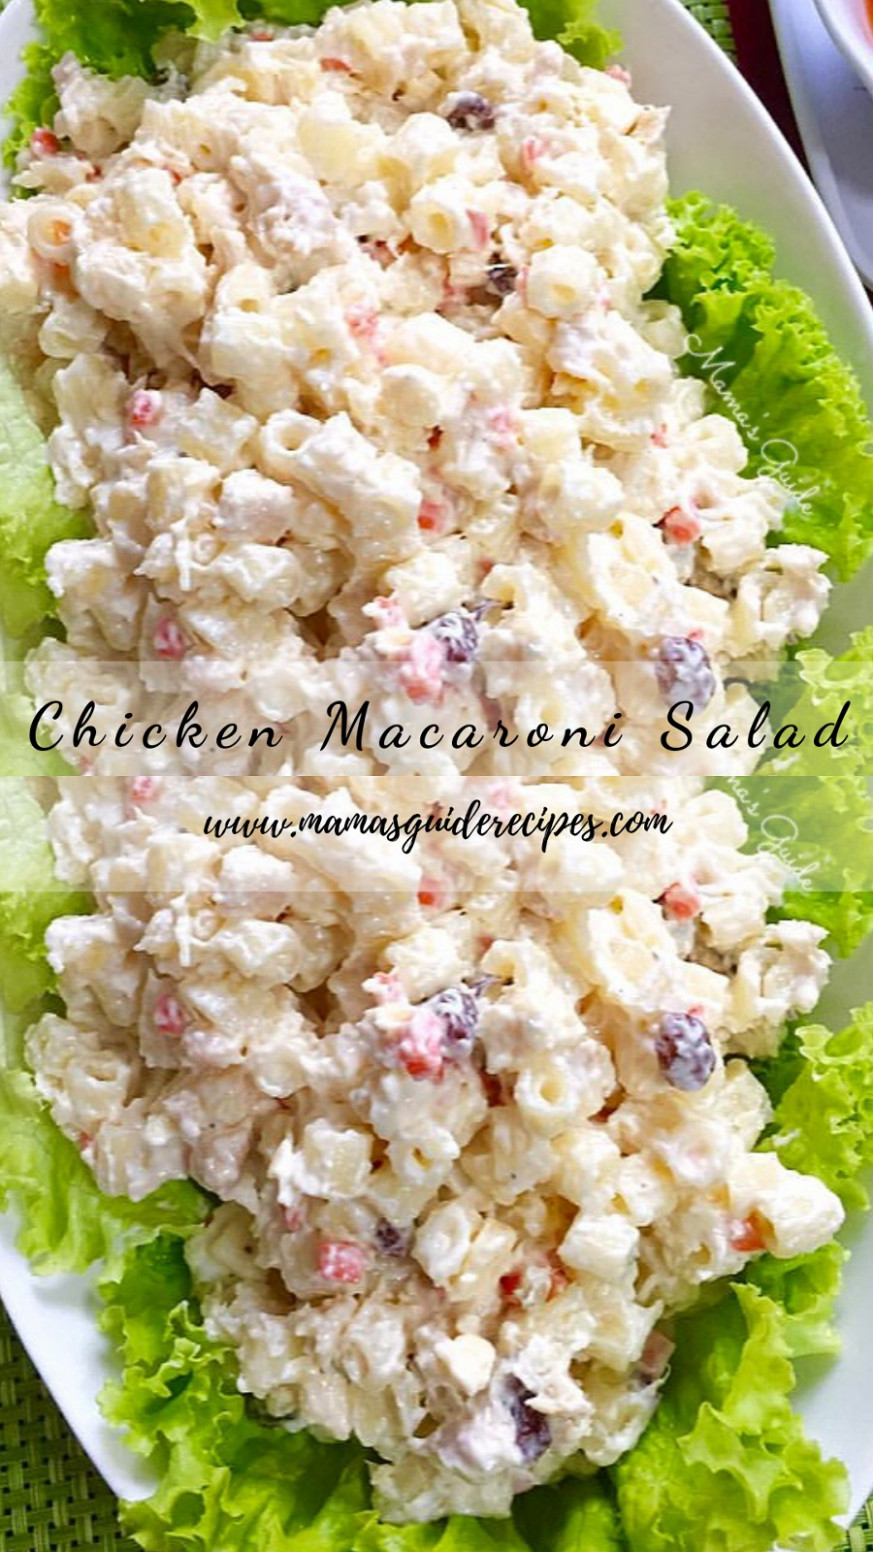 Chicken Macaroni Salad Kawaling Pinoy - Mama's Guide Recipes - Chicken Recipes Kawaling Pinoy